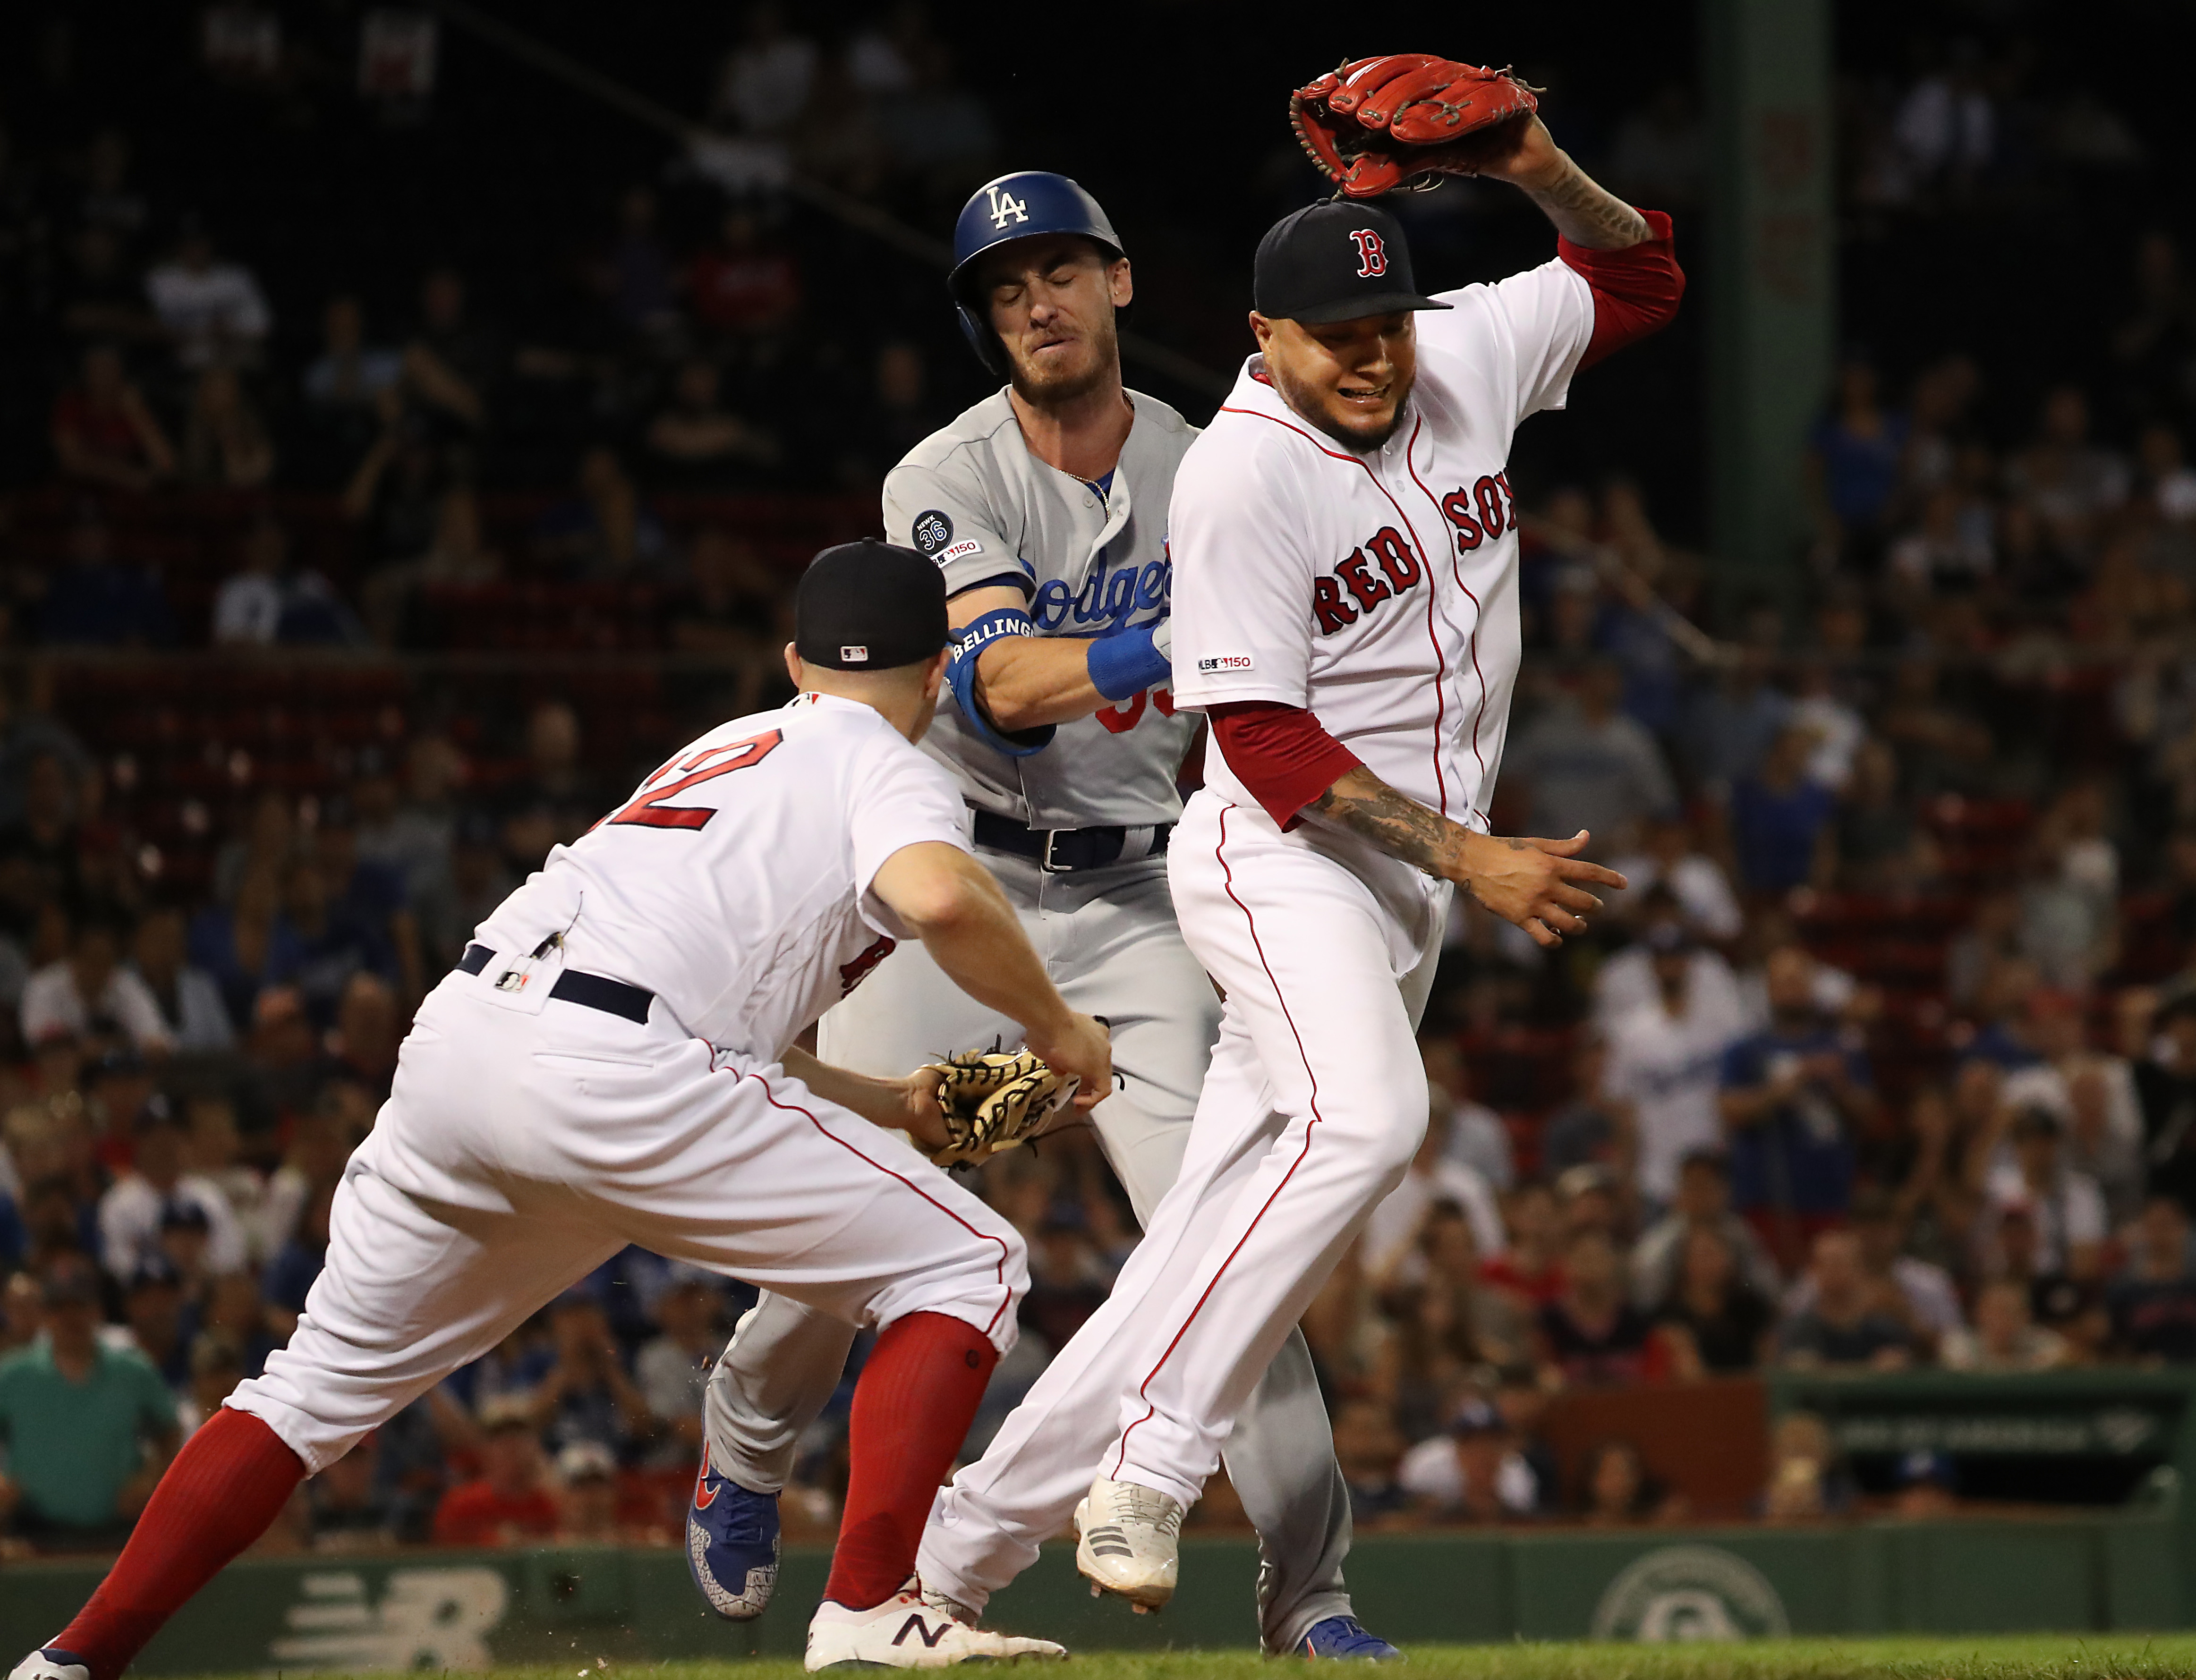 Here's why the Red Sox continue to struggle against elite teams